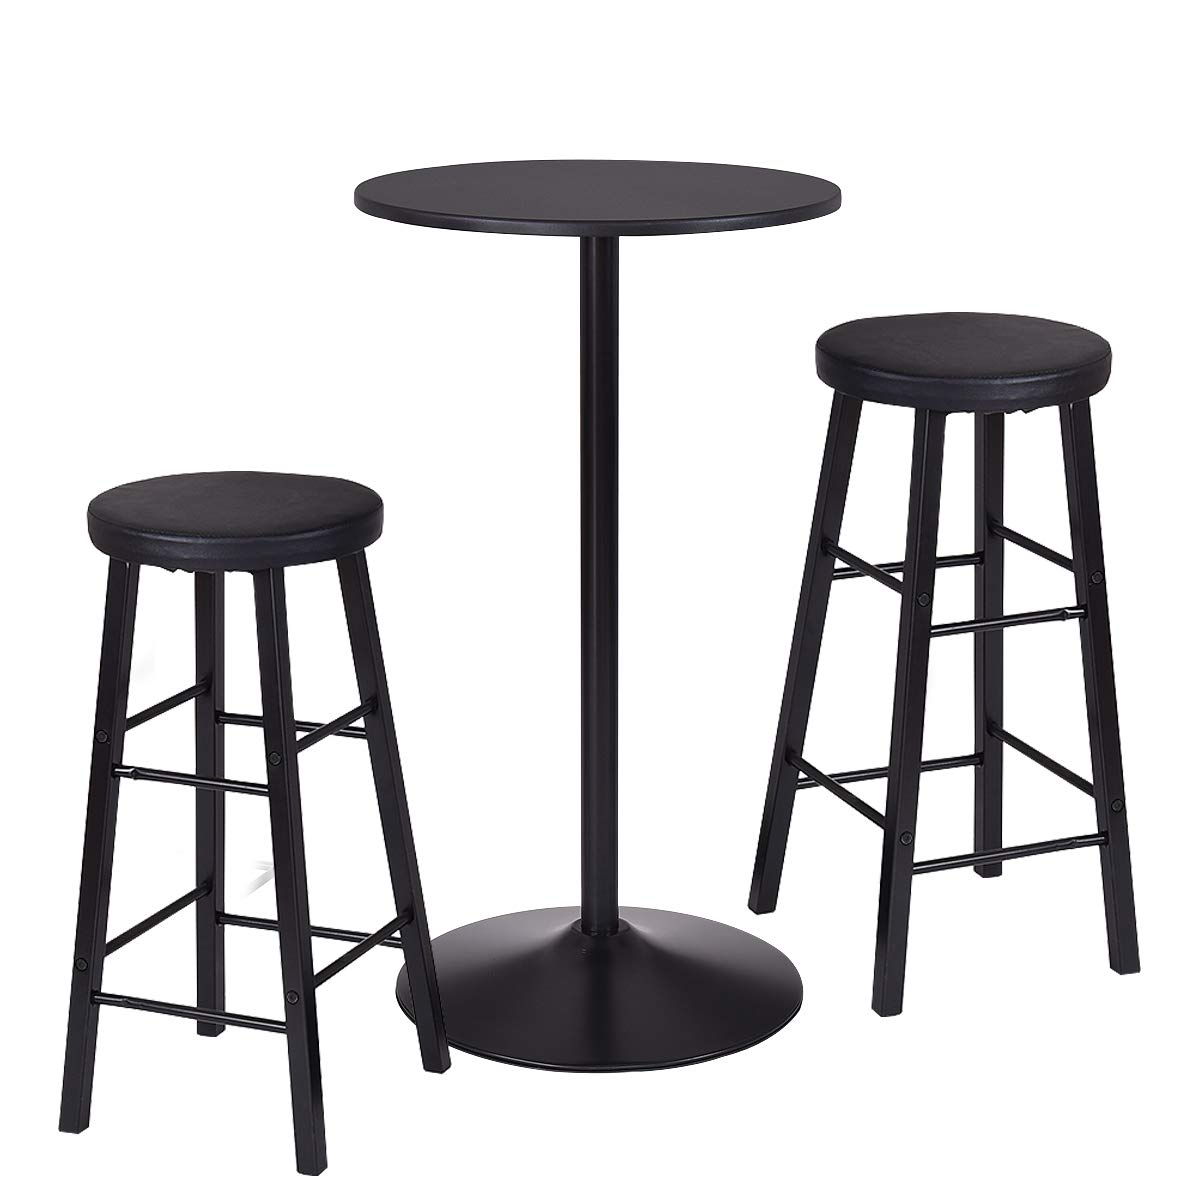 COSTWAY 3-Piece Bar Height Table Set with 2 Stools Pub Bistro Kitchen Dining Furniture Round Top Table with Stools